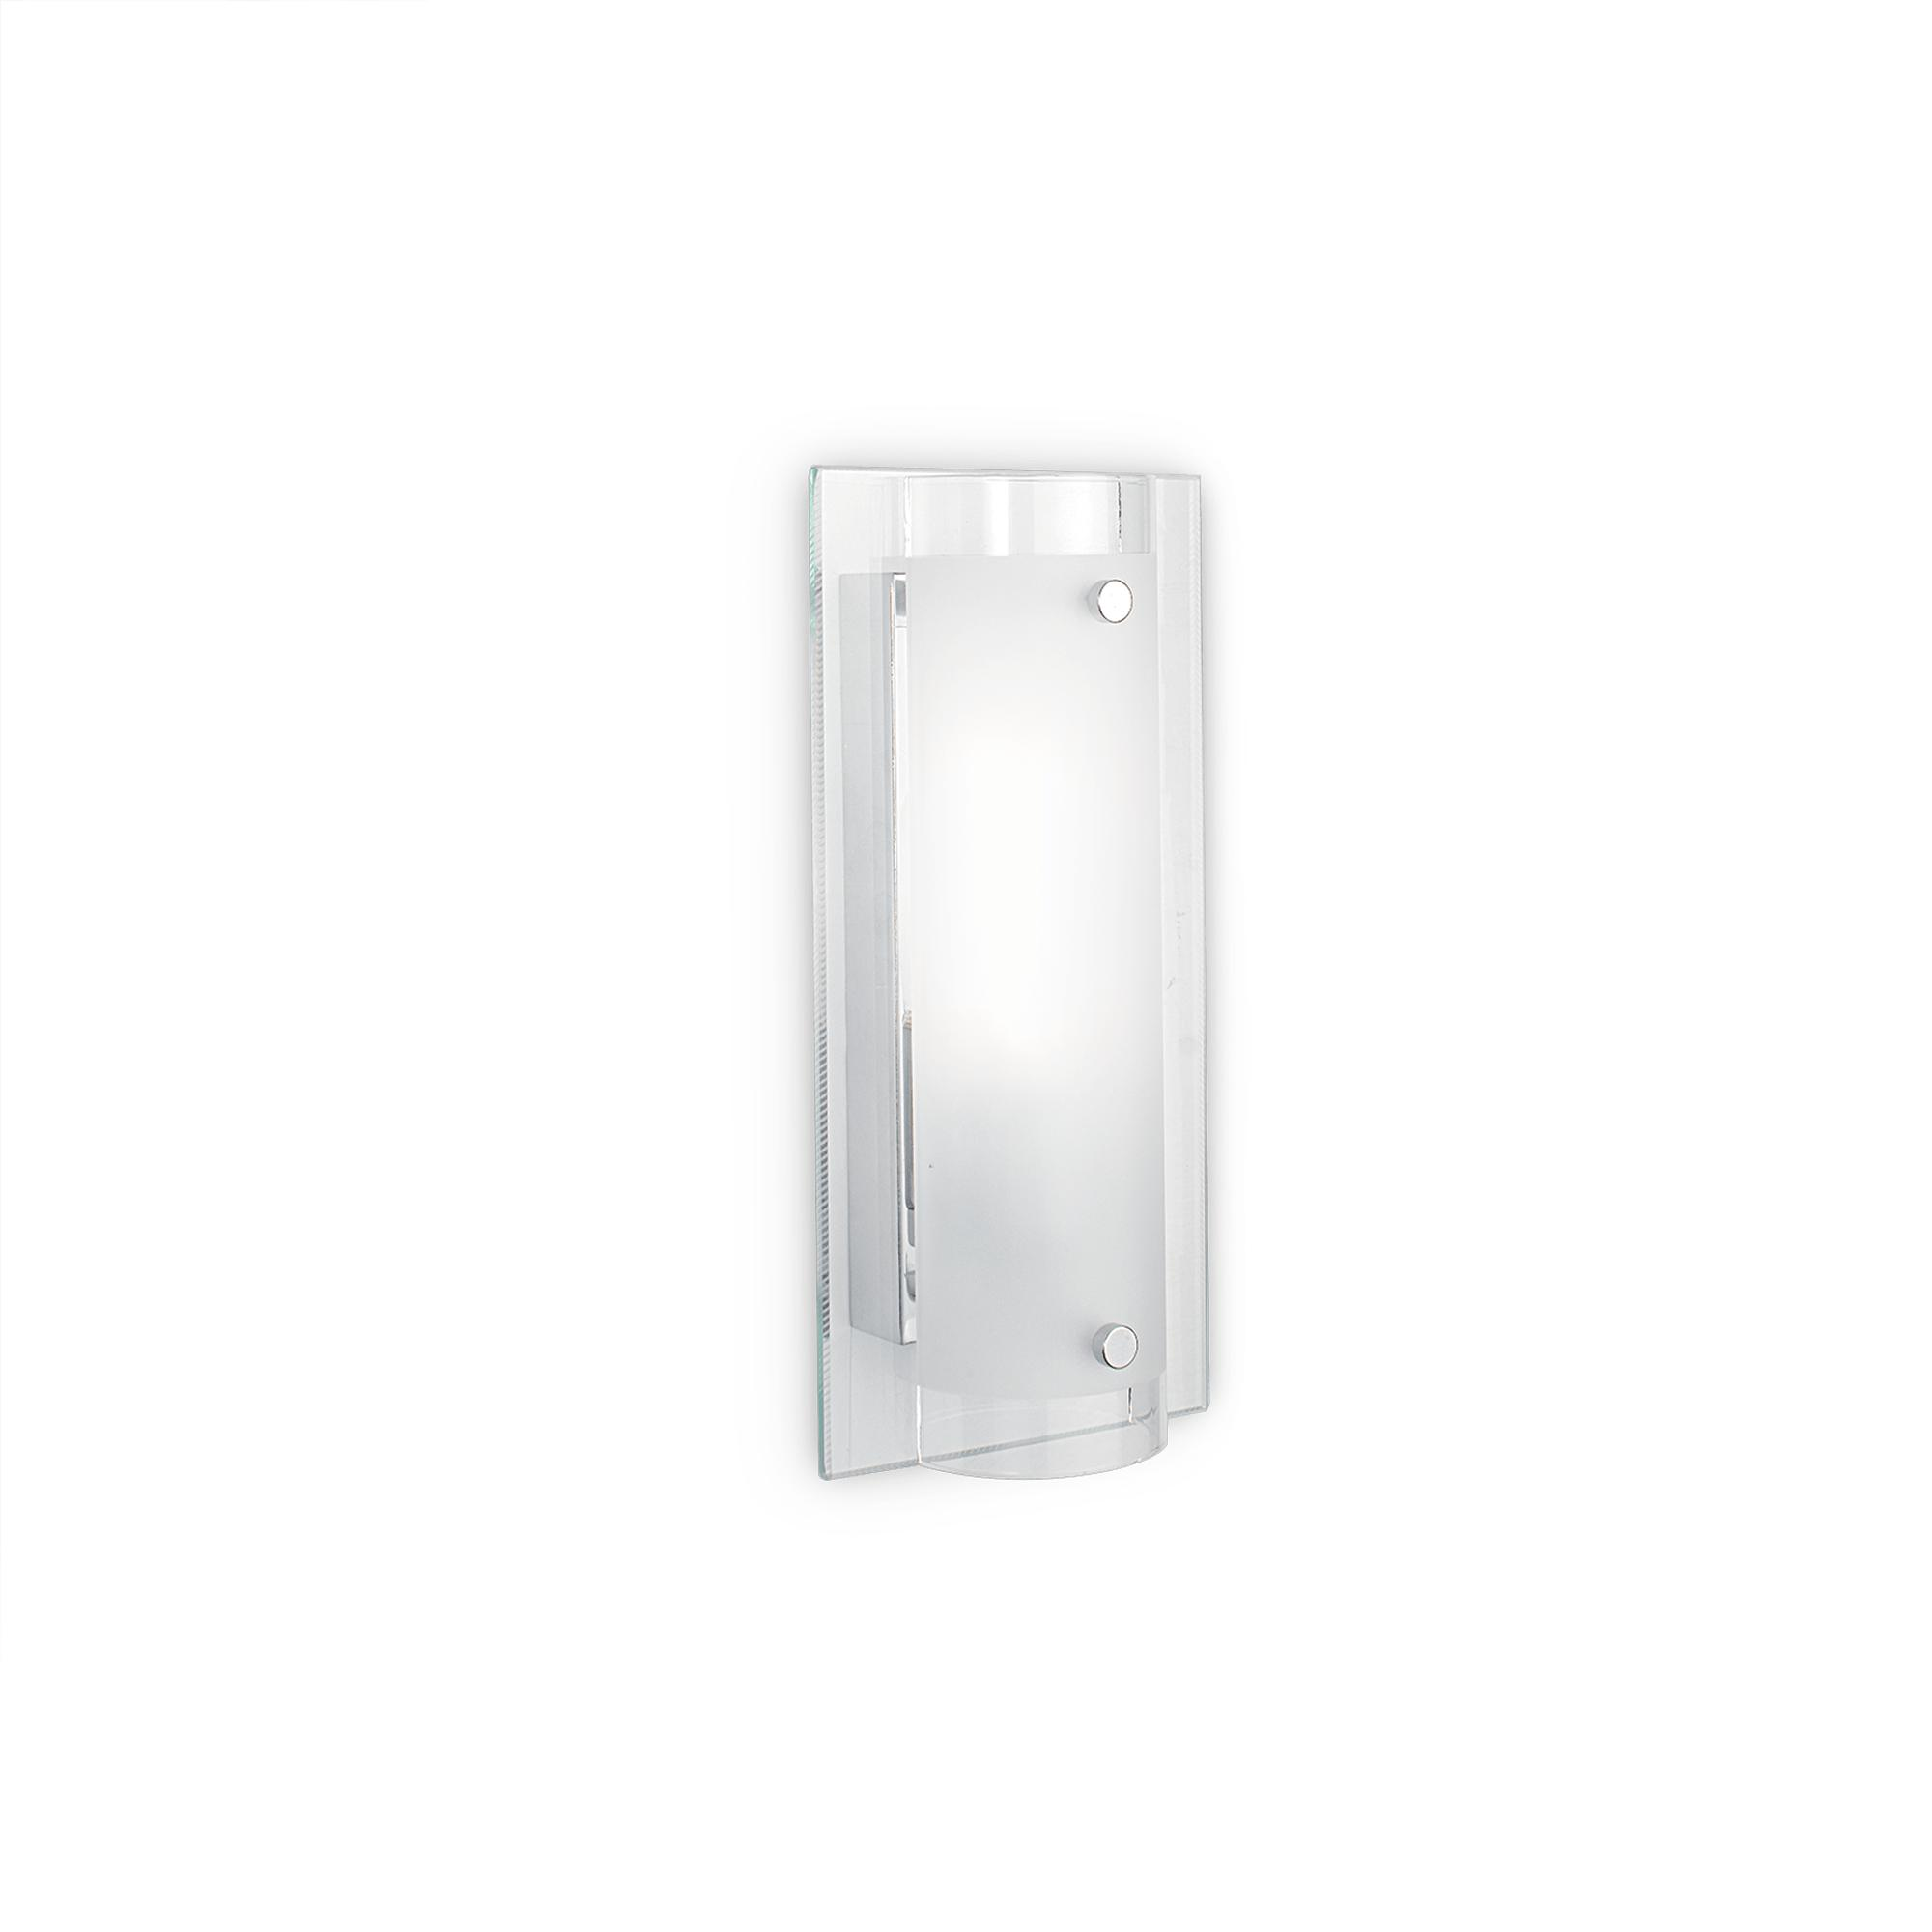 Ideal lux LED tudor ap1 wand lampe 5W 51840